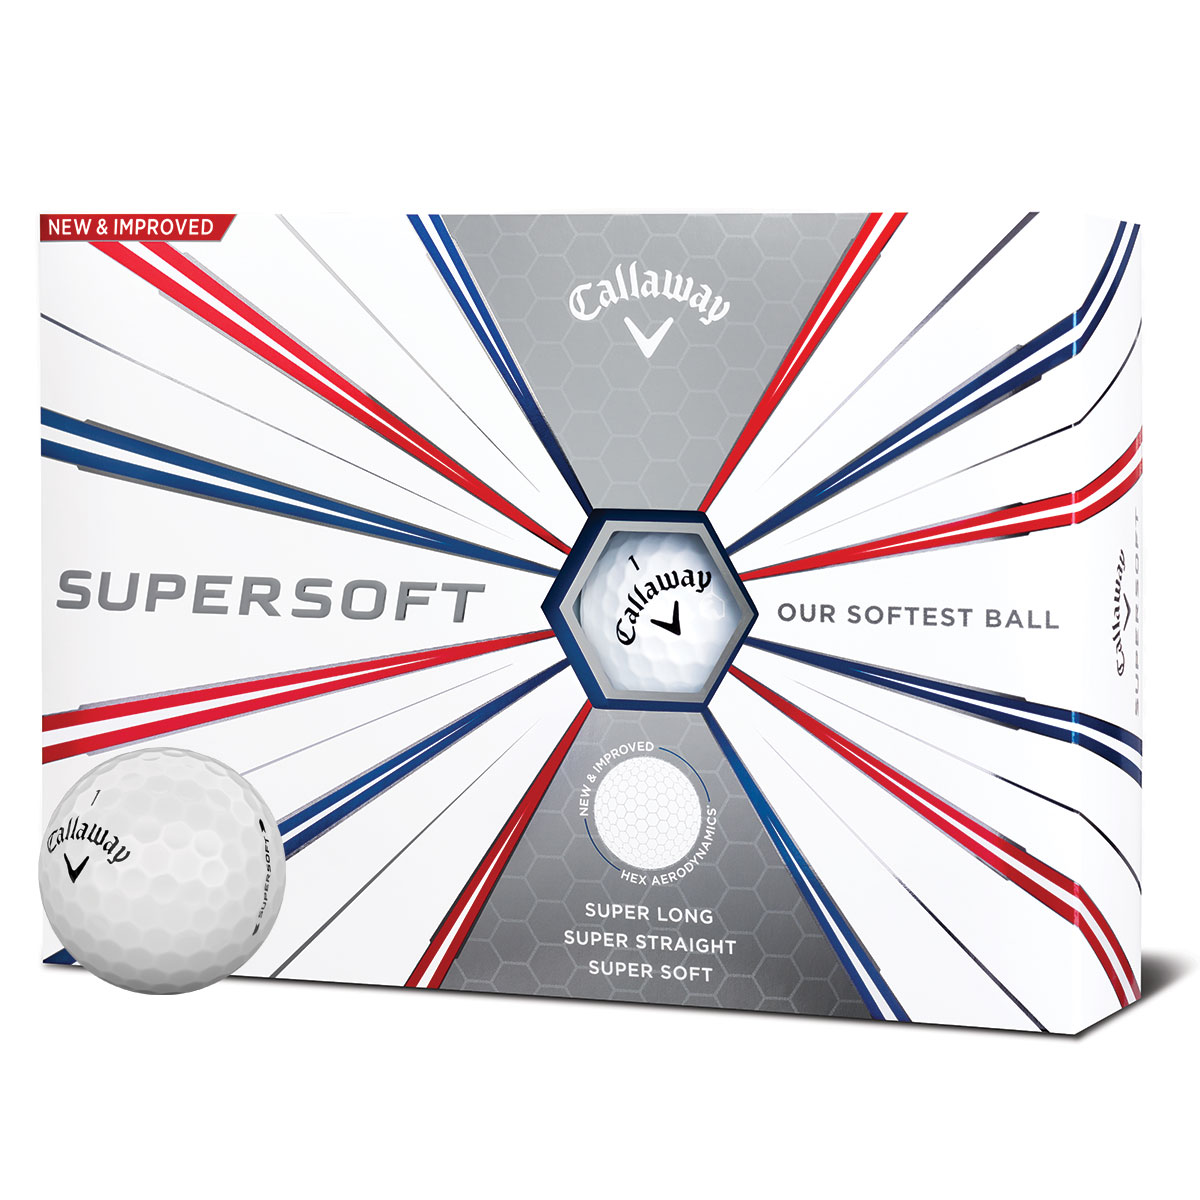 Callaway Golf Supersoft Golf Balls Review